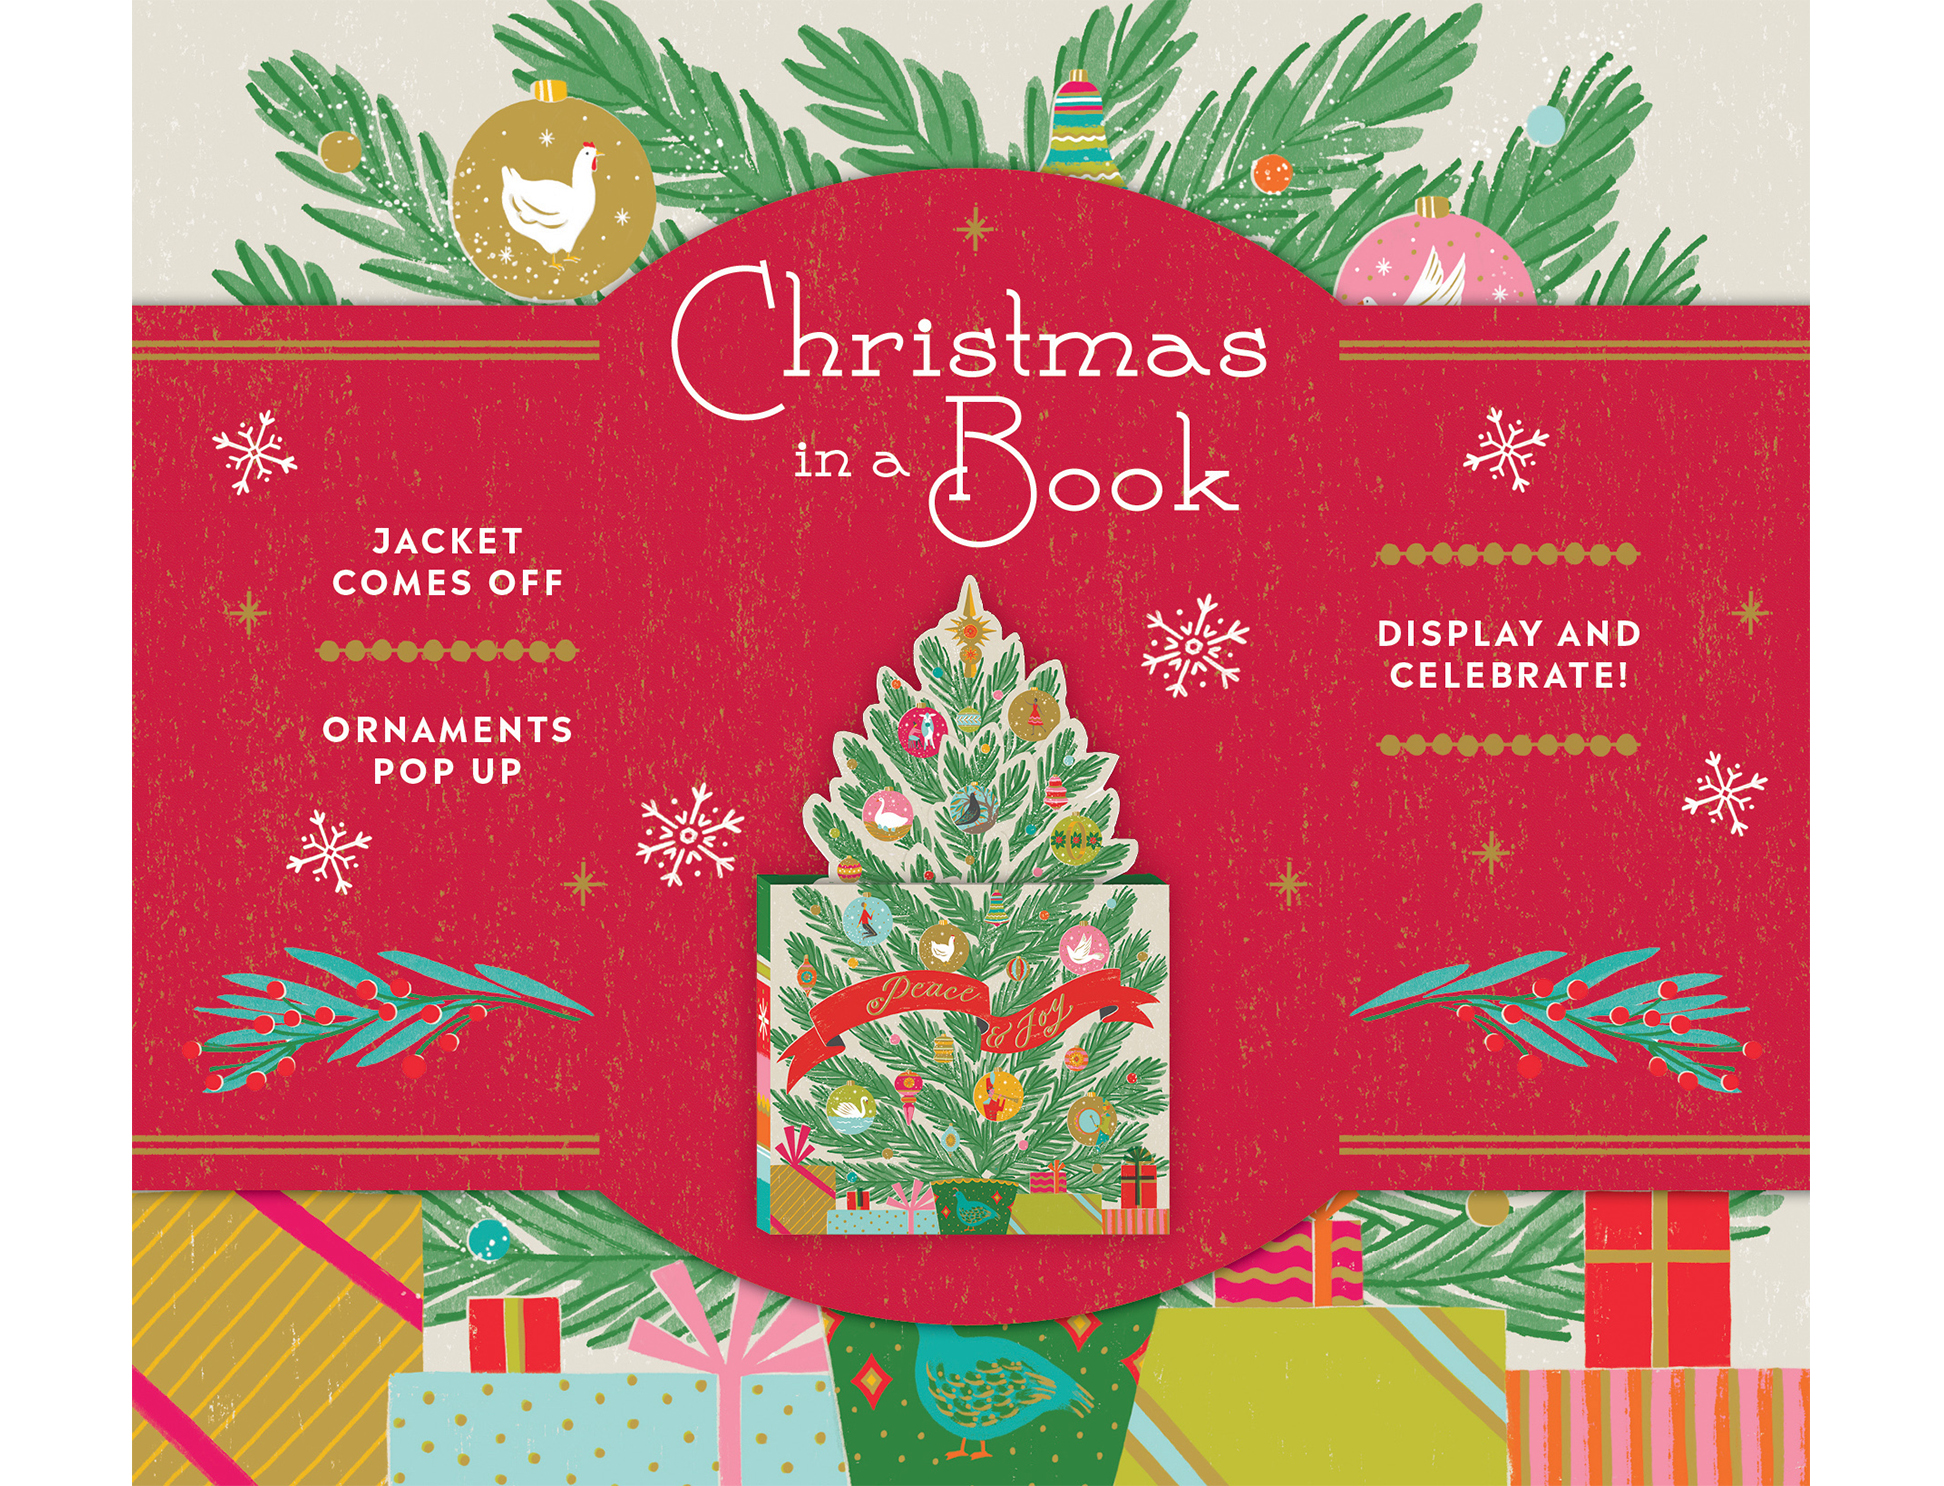 Christmas in a Book